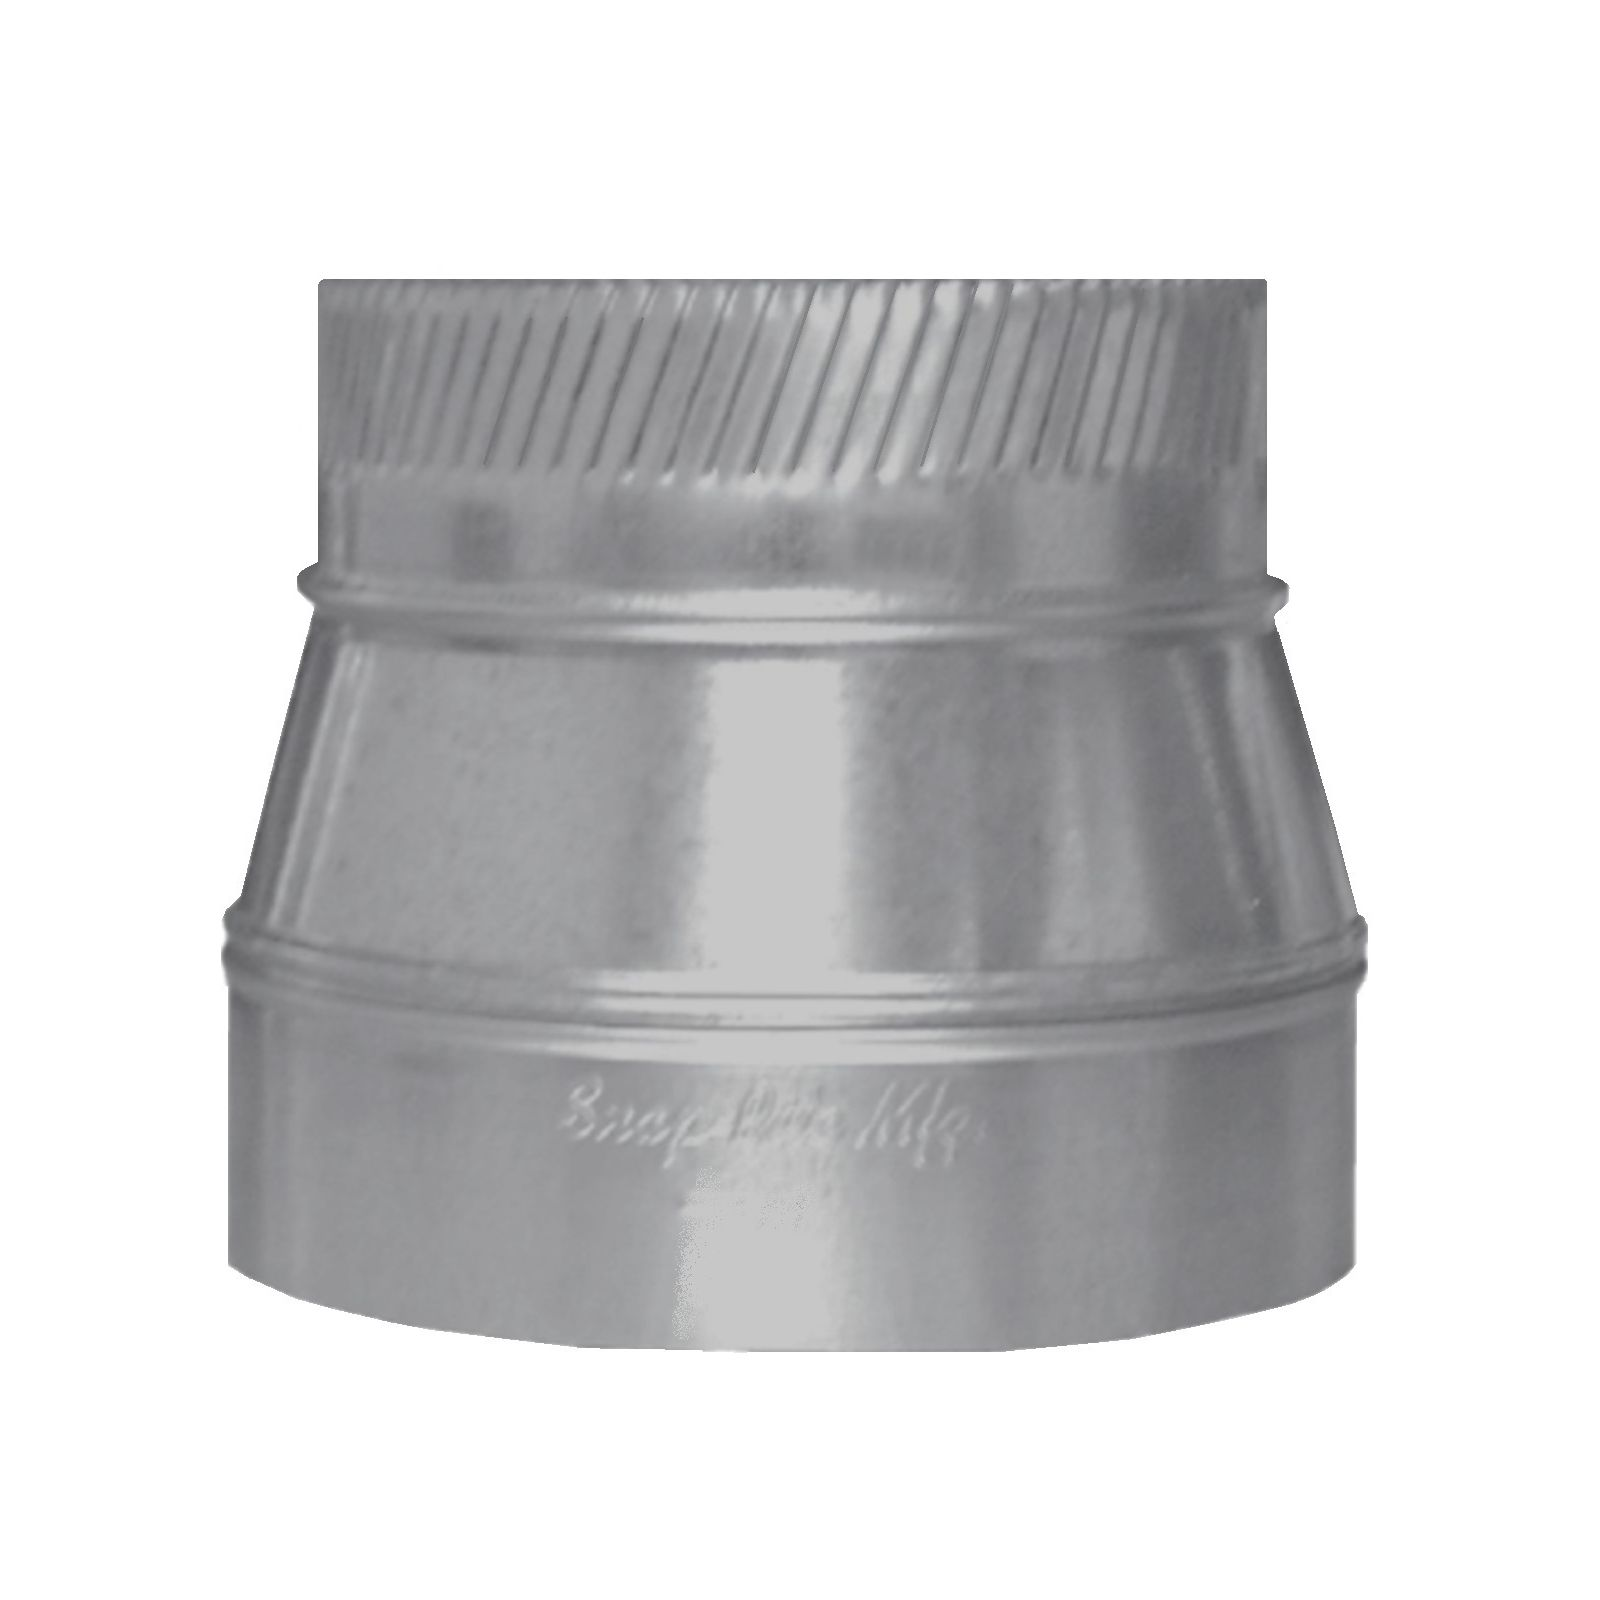 "Snap-Rite 10X09-311 - Crimp Tapered Reducer, 10"" x 09"""